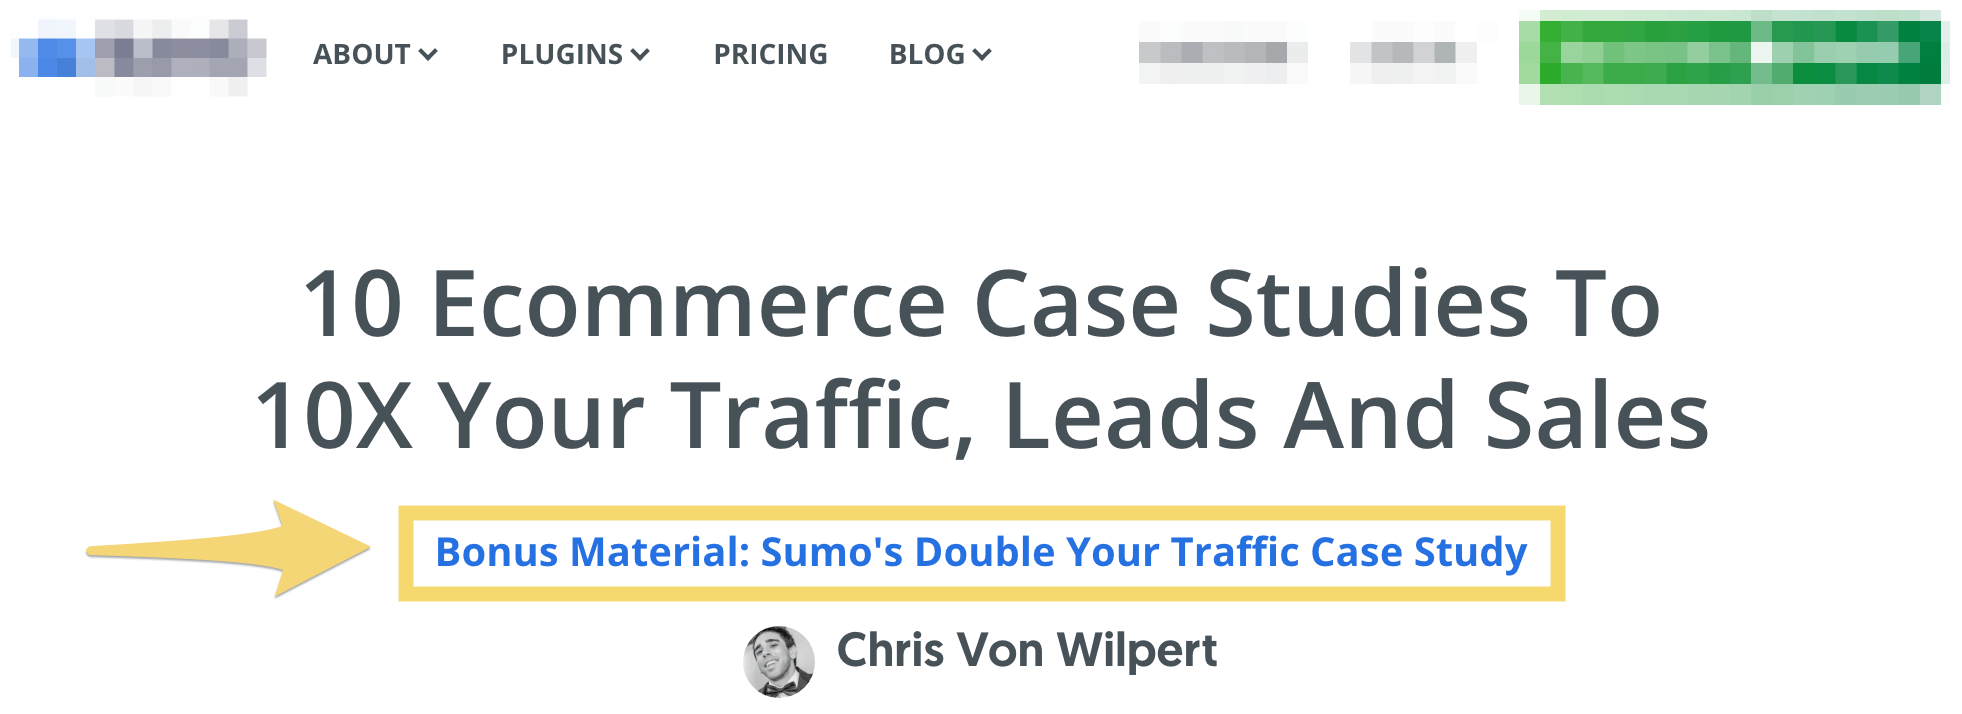 content upgrade ecommerce case studies immage